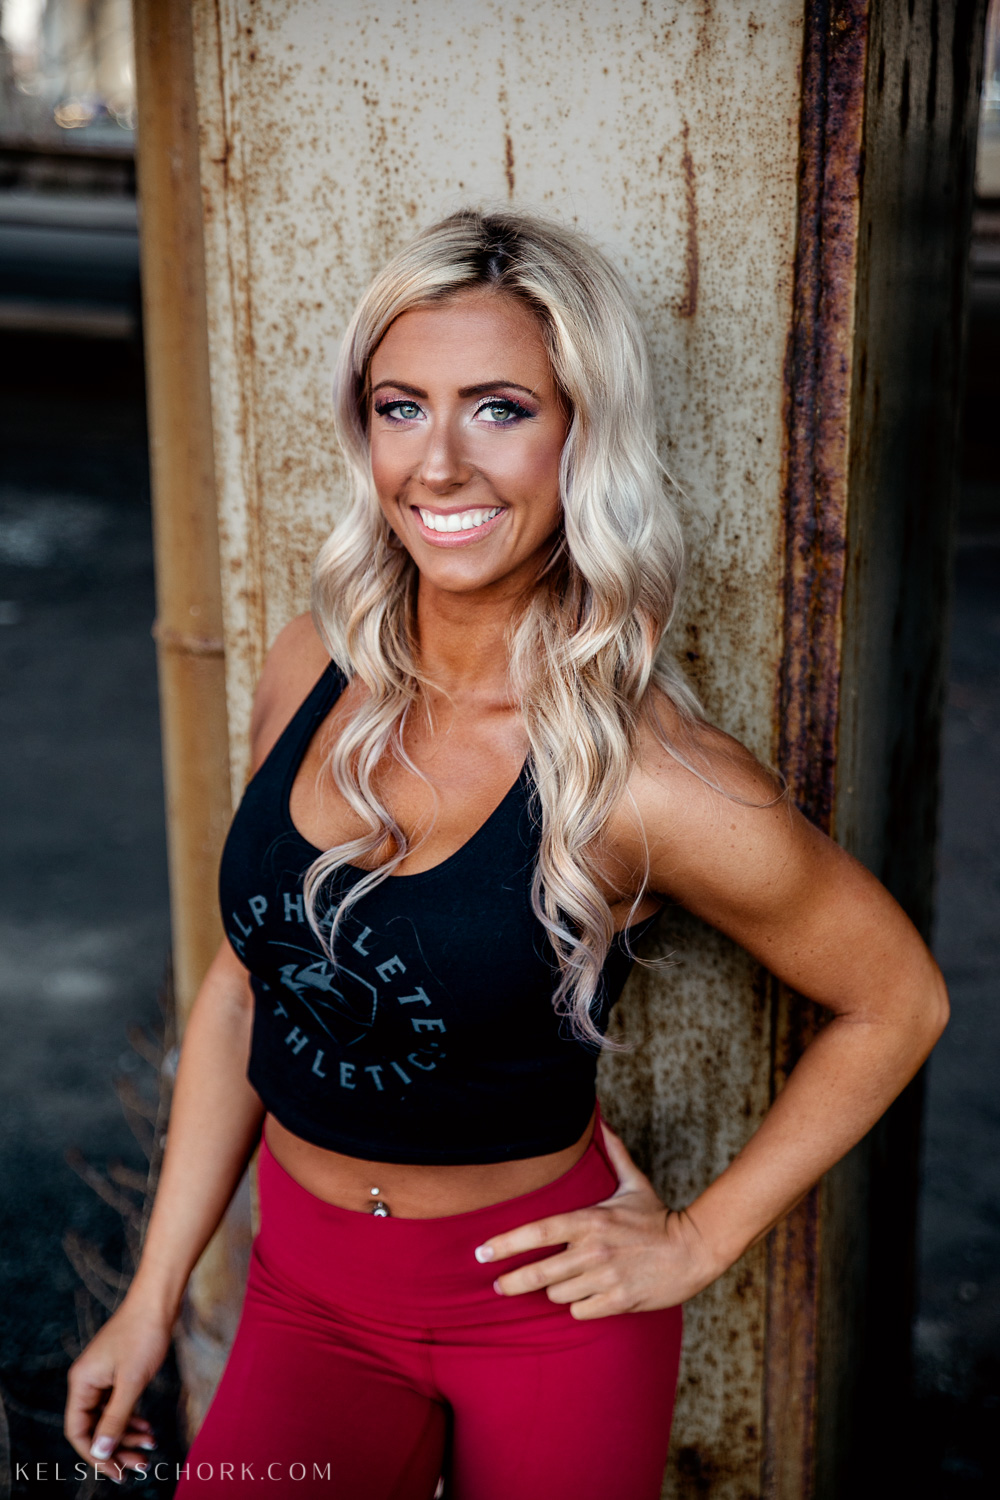 Erin_fitness_photoshoot-18.jpg